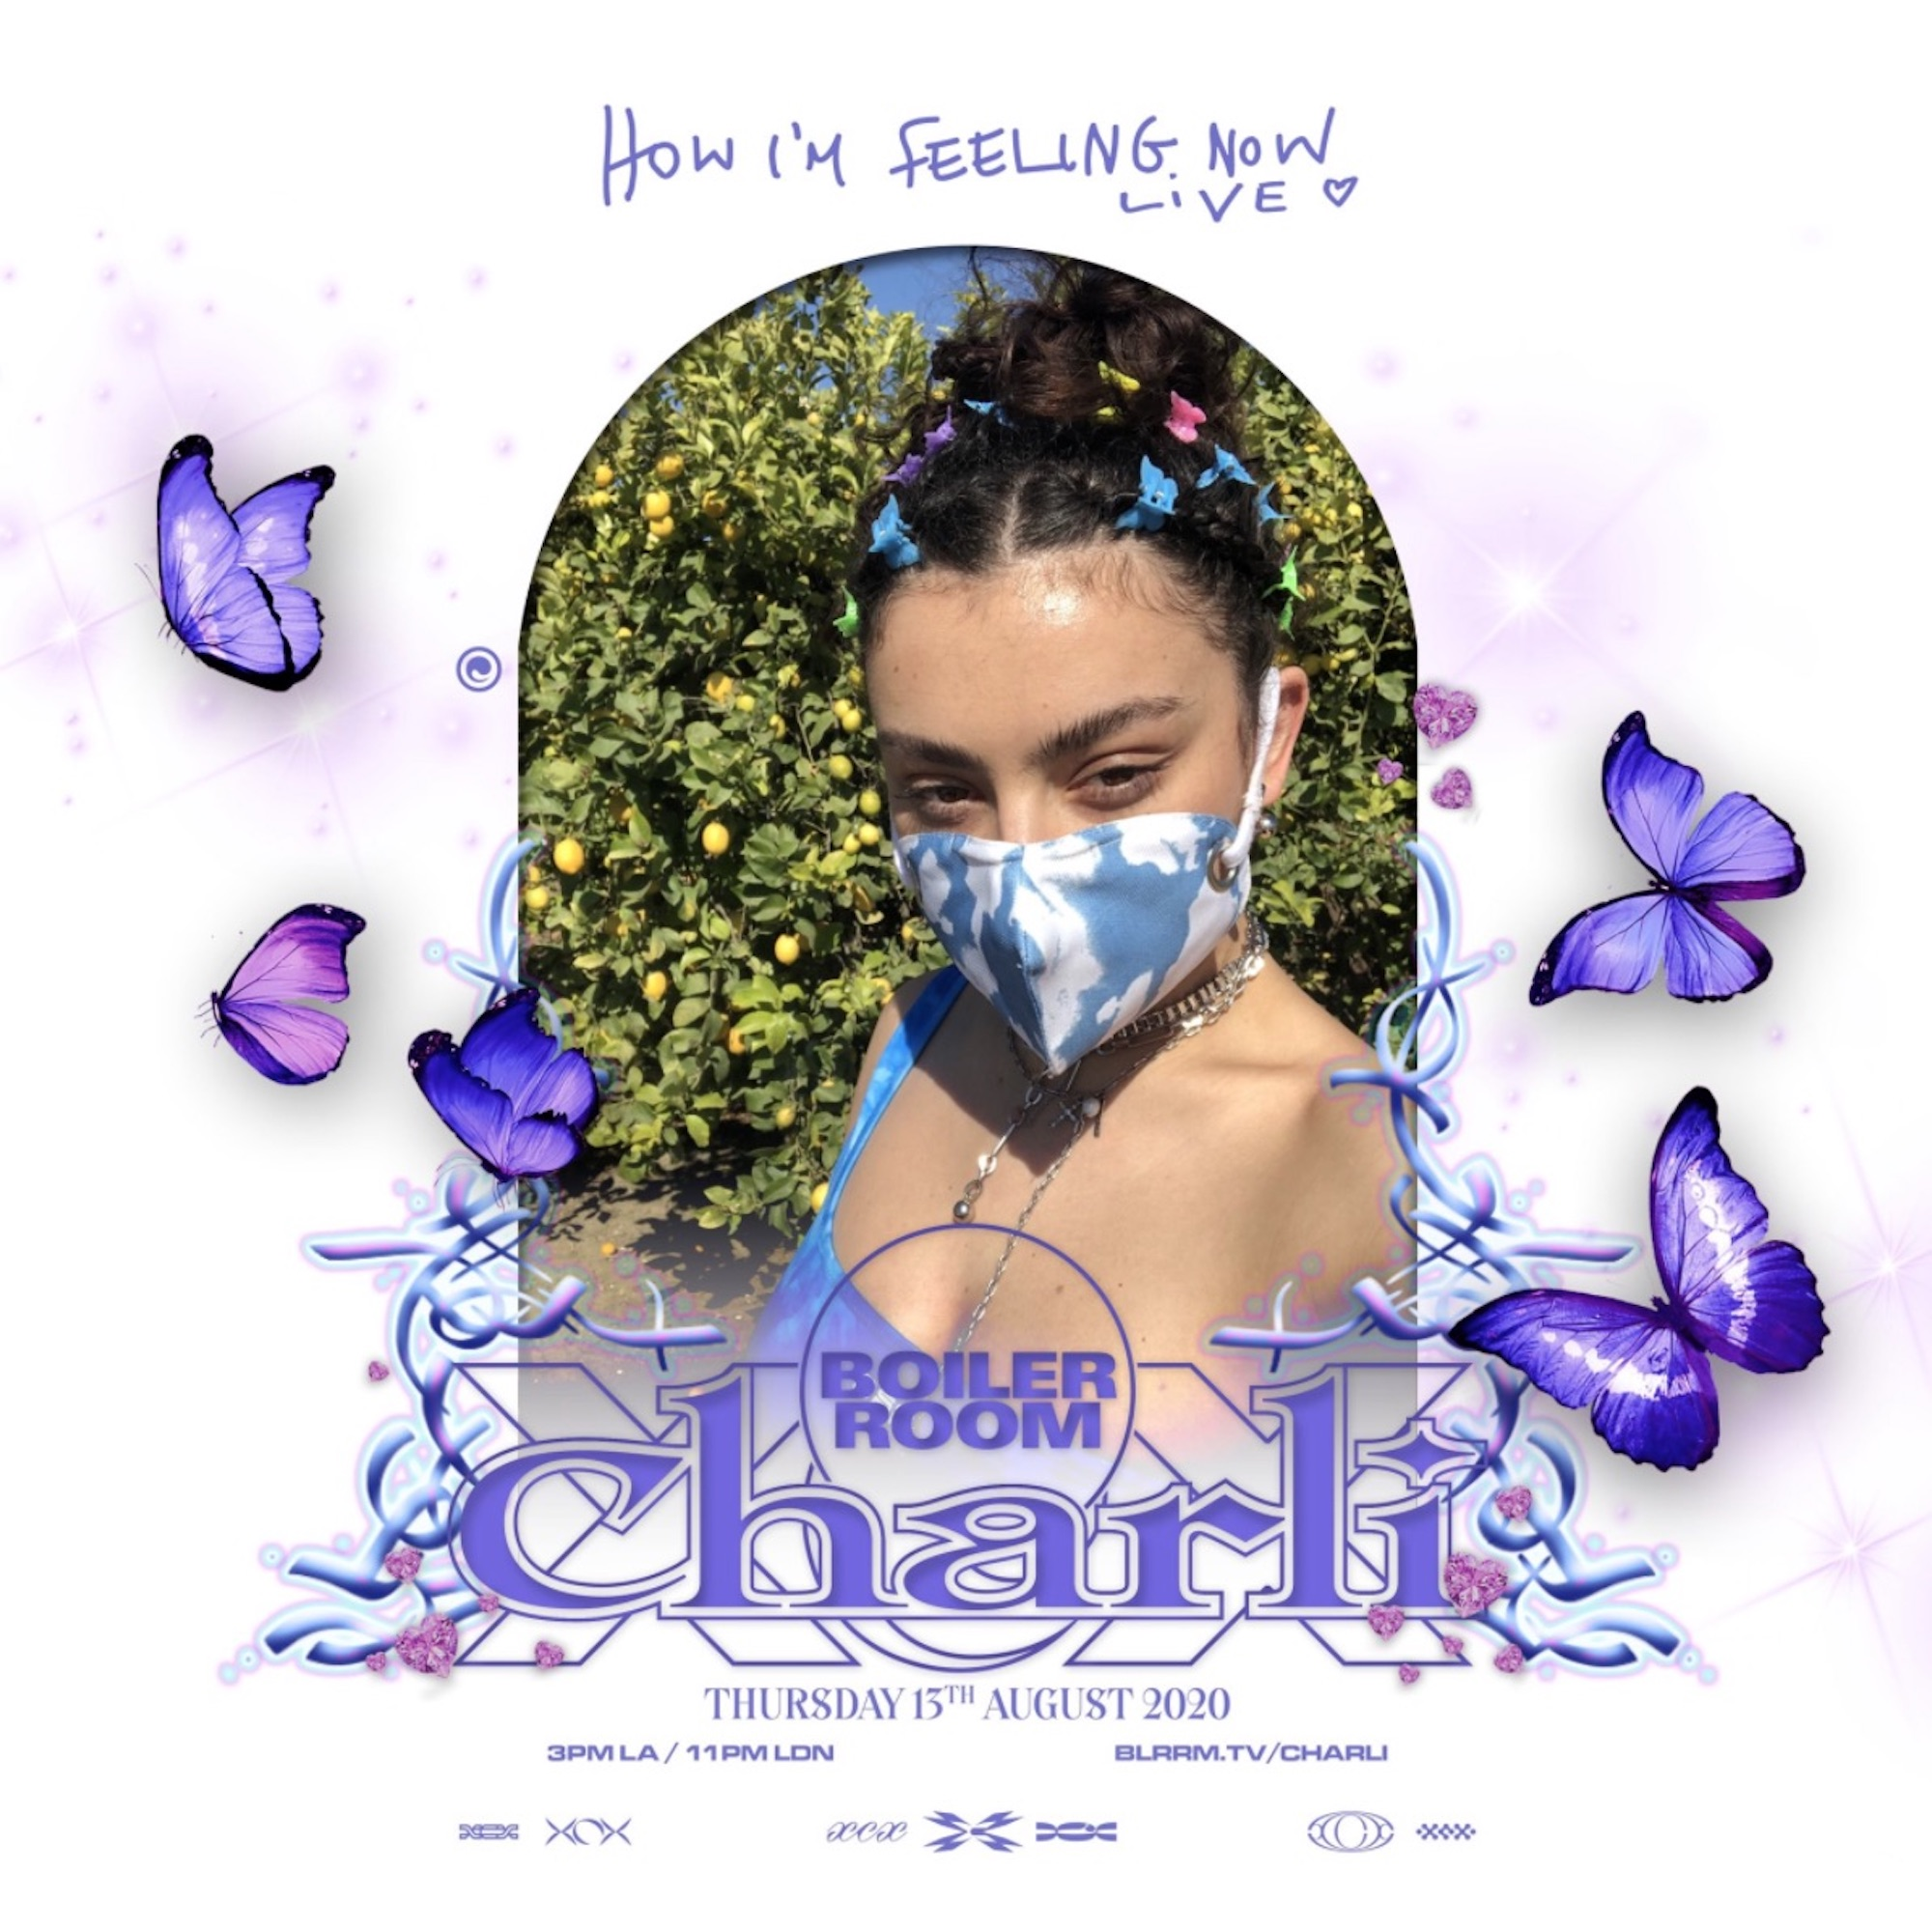 Charli xcx announces live stream with boiler room to raise money for charity